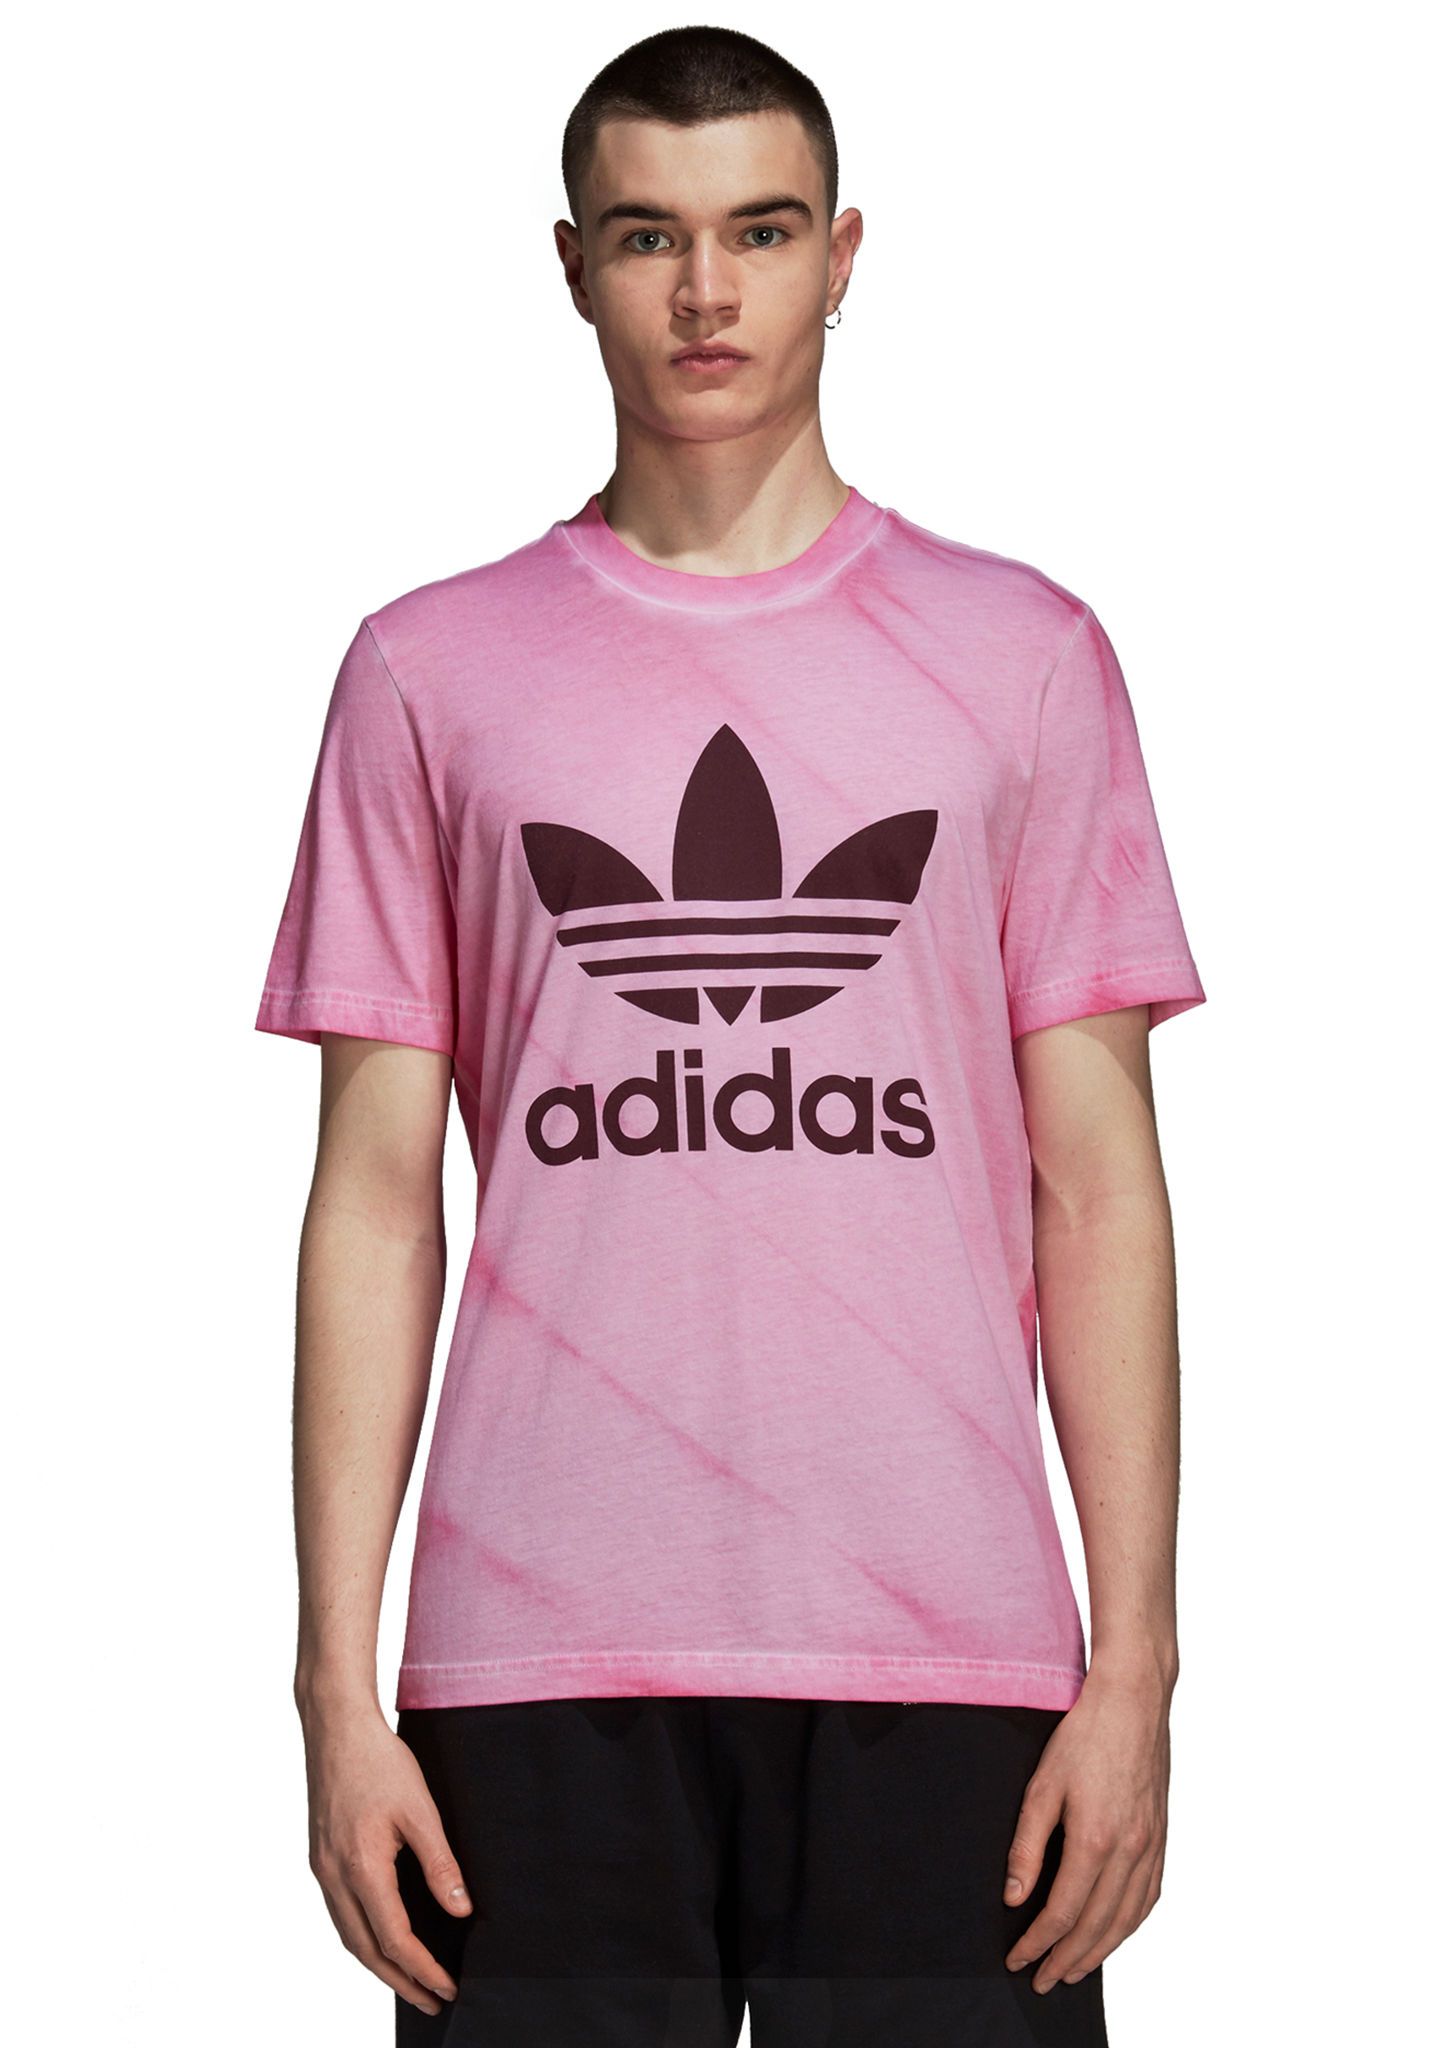 e87f5b990cca ADIDAS ORIGINALS Tie Dye - T-Shirt for Men - Pink - Planet Sports